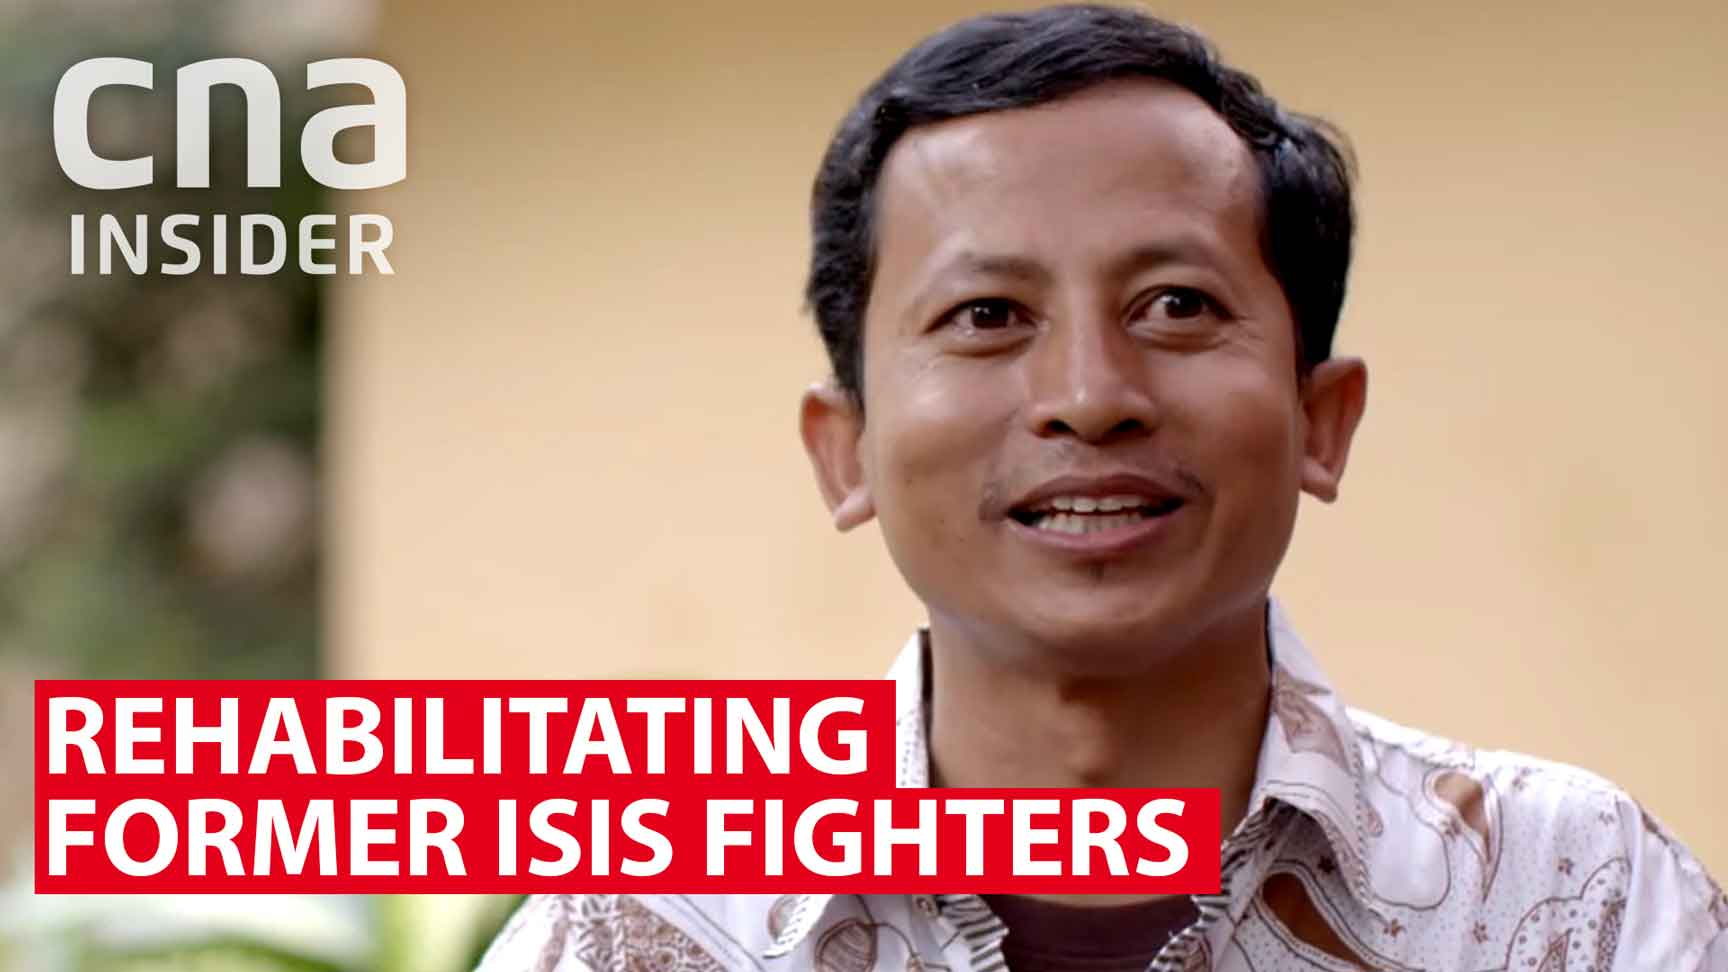 How to rehabilitate a former ISIS fighter